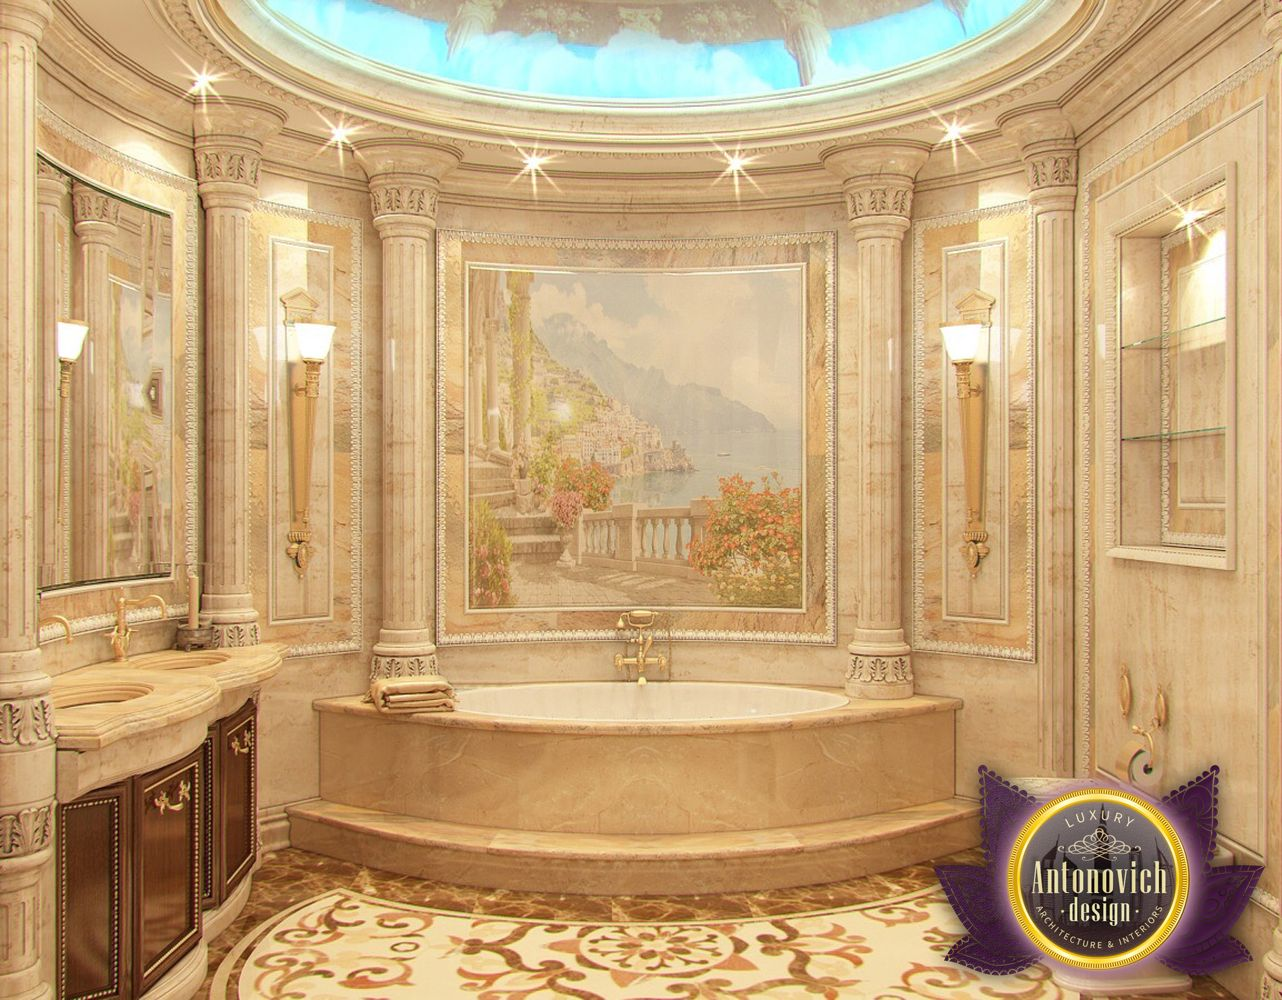 Nigeiradesign bathroom designs by luxury antonovich design for Architecture and interior design